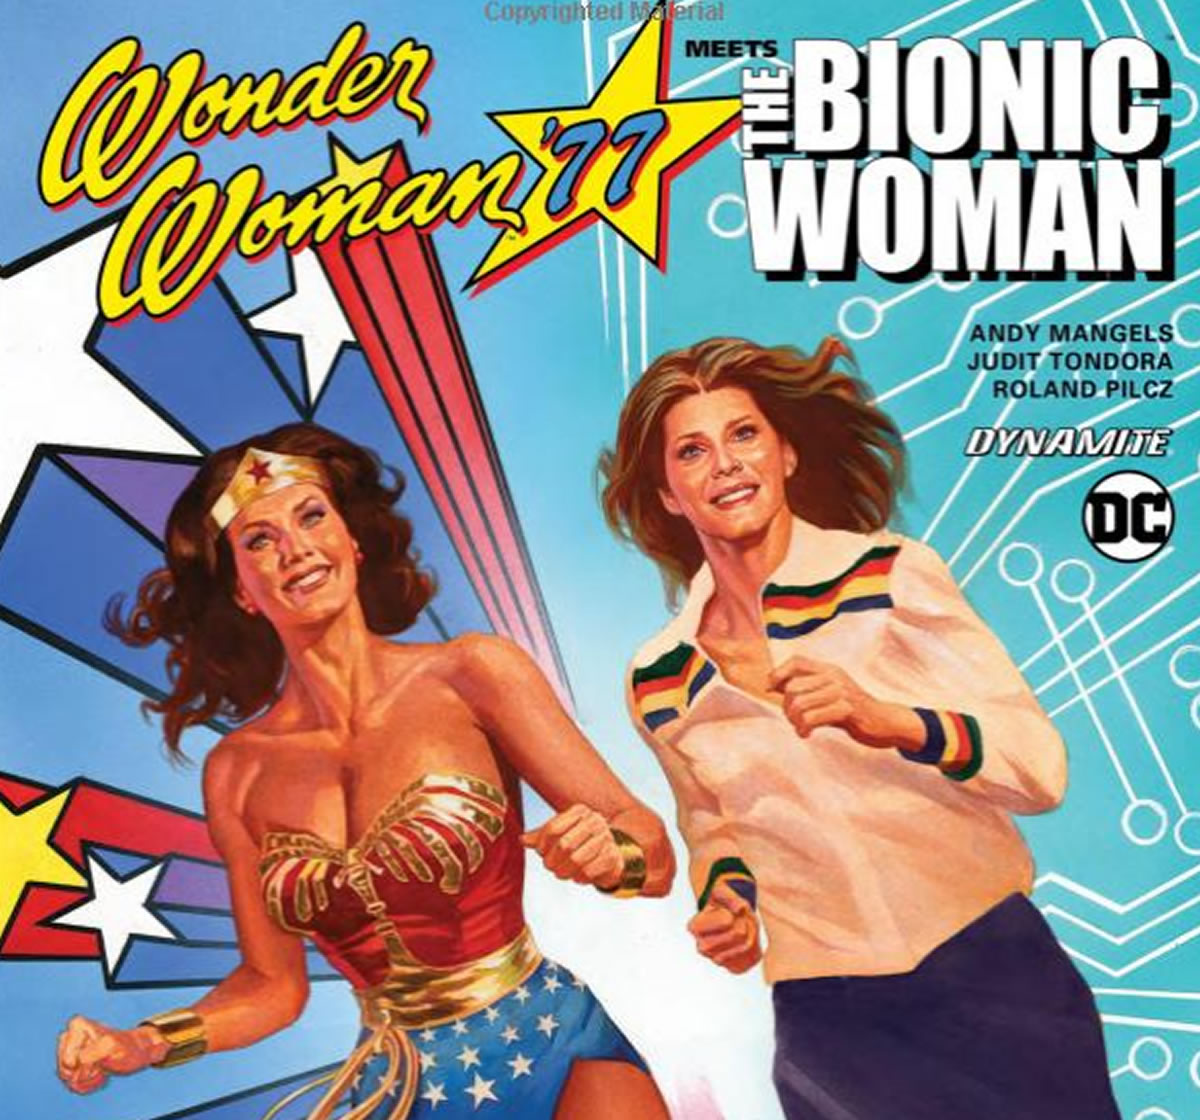 wonderwomanbionic1